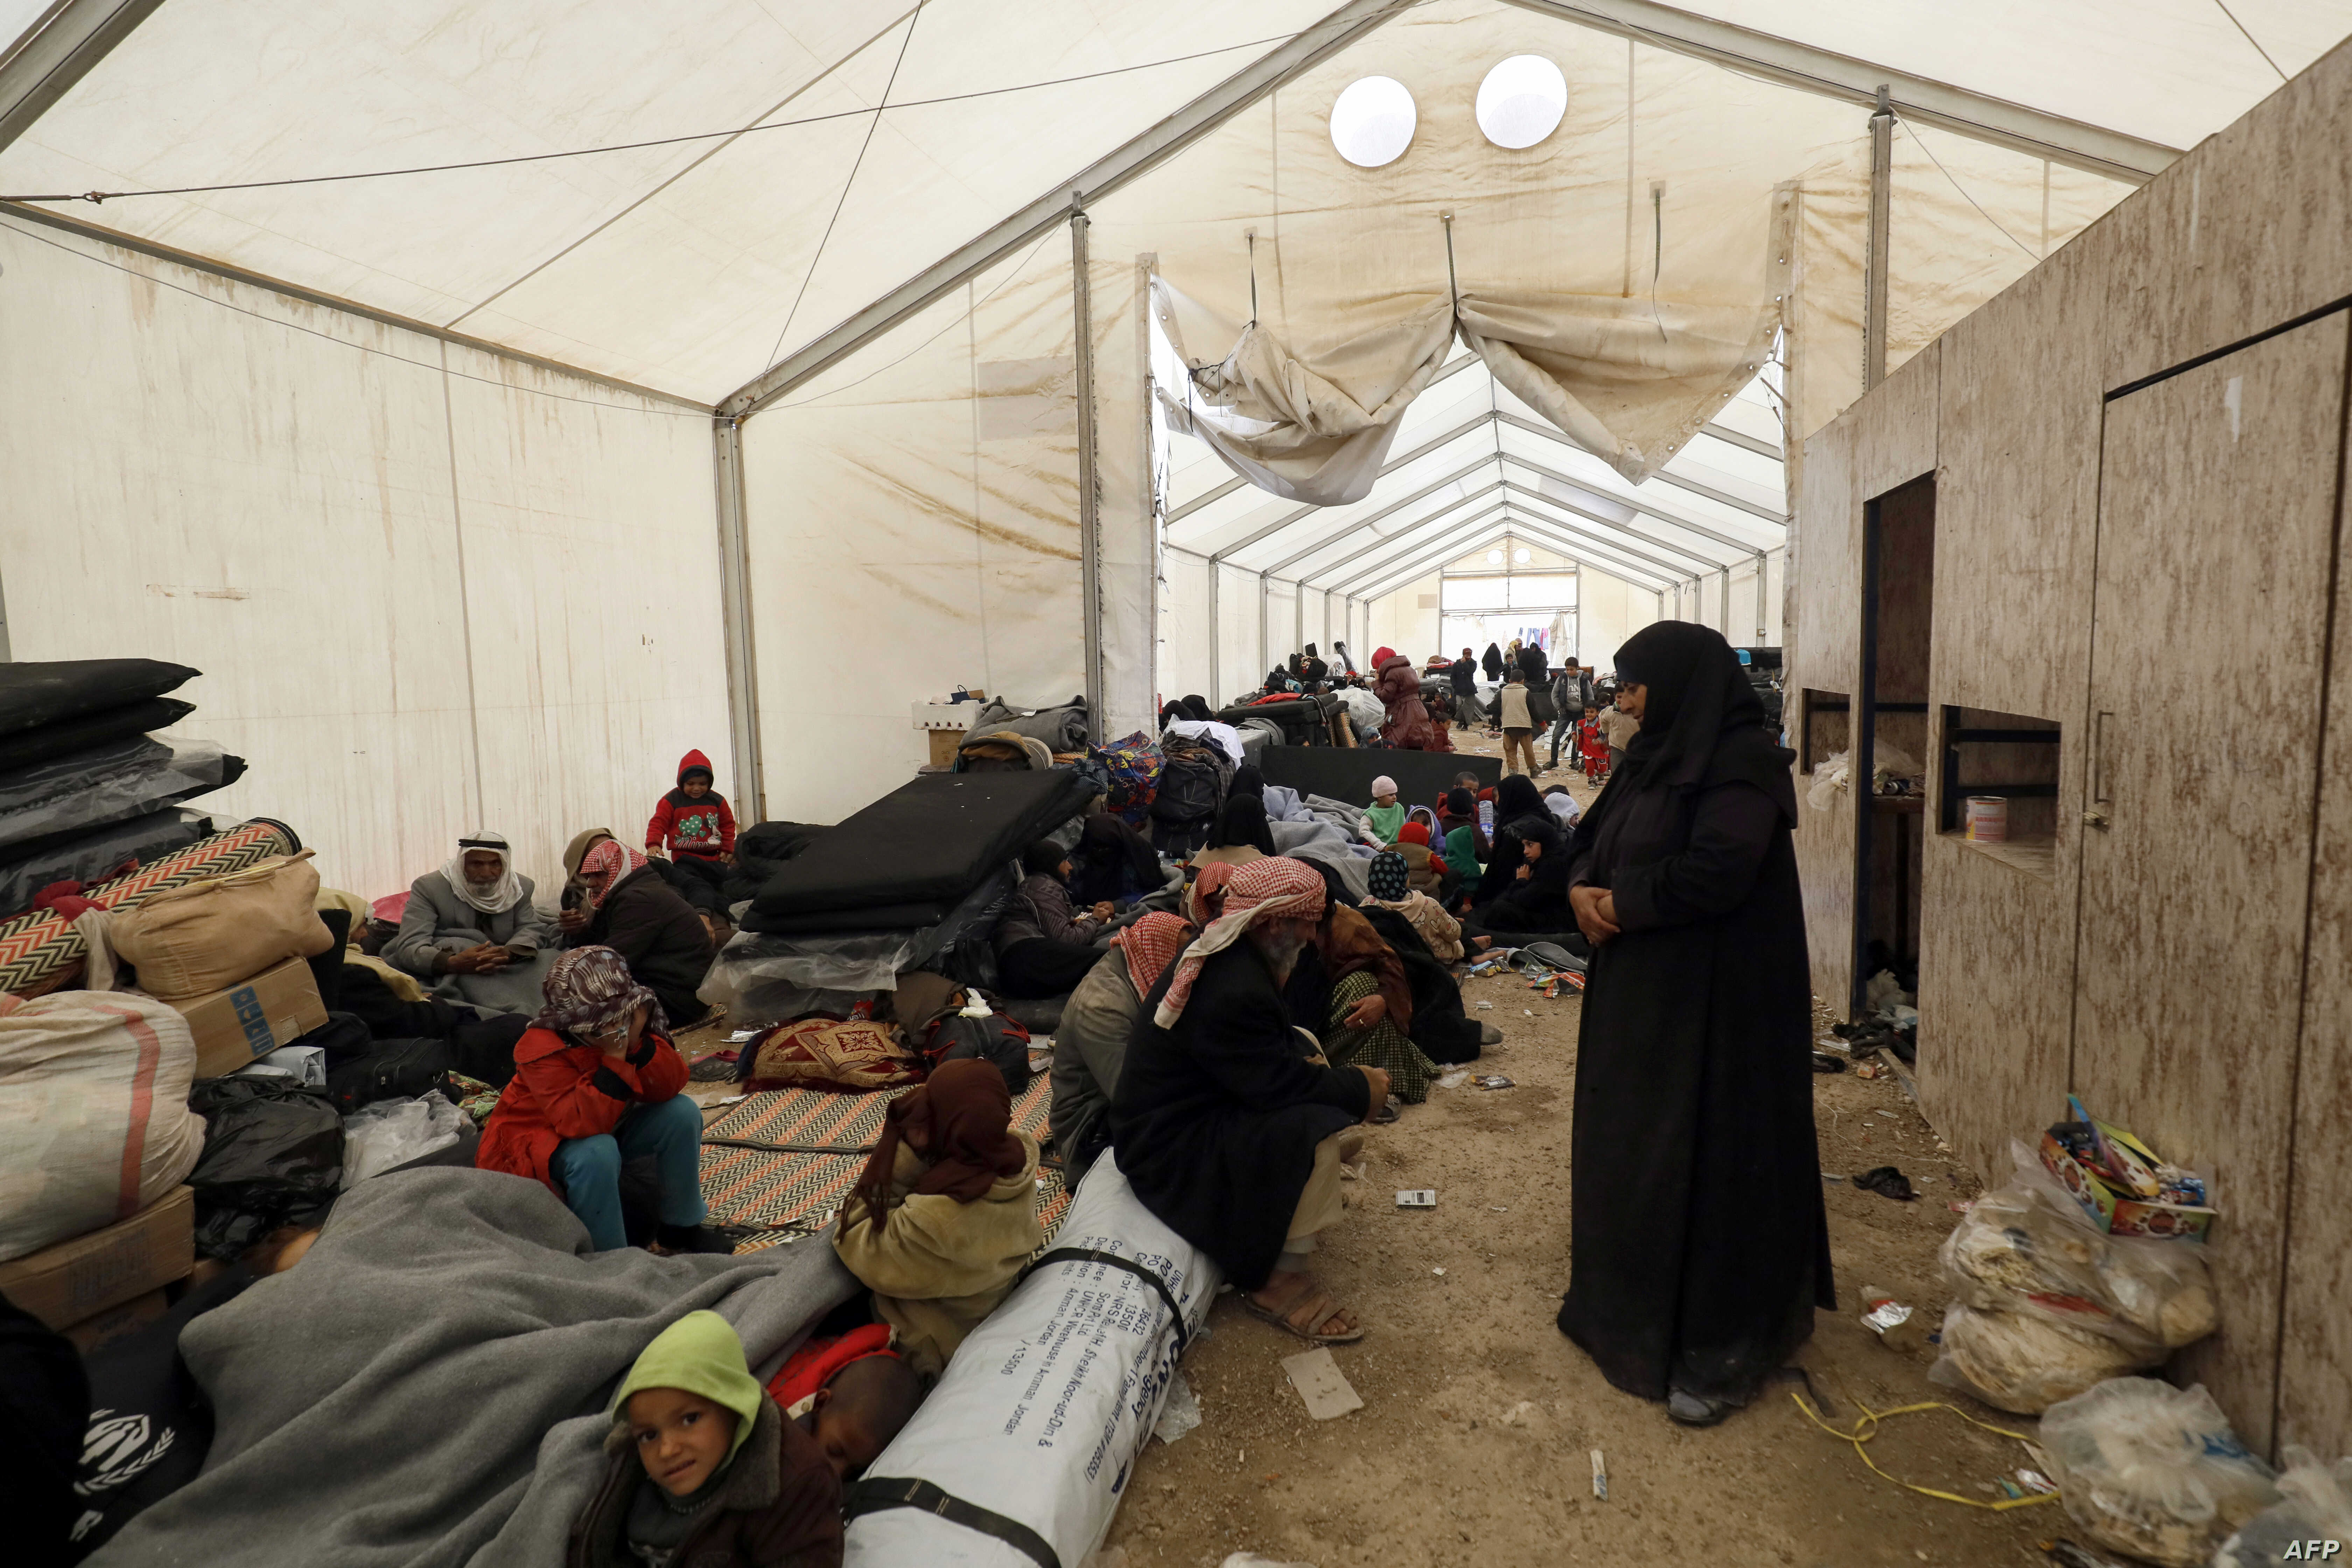 FILE - Displaced people gather inside a tent in the al-Hol camp in northeastern Syria, Dec. 8, 2018.